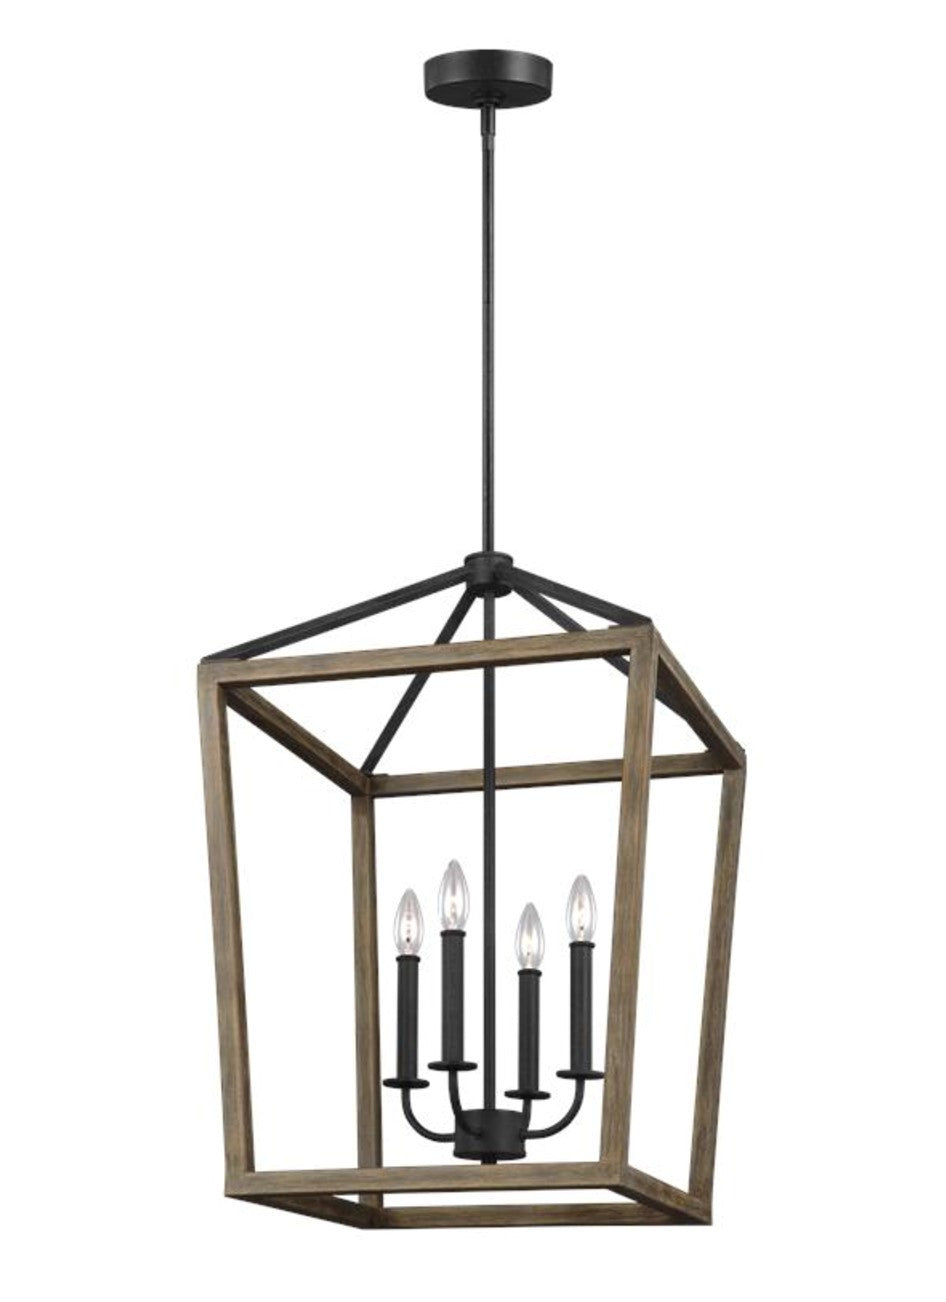 Gannet Chandelier in Weathered Oak Wood / Antique Forged Iron by Feiss, F3191/4WOW/AF